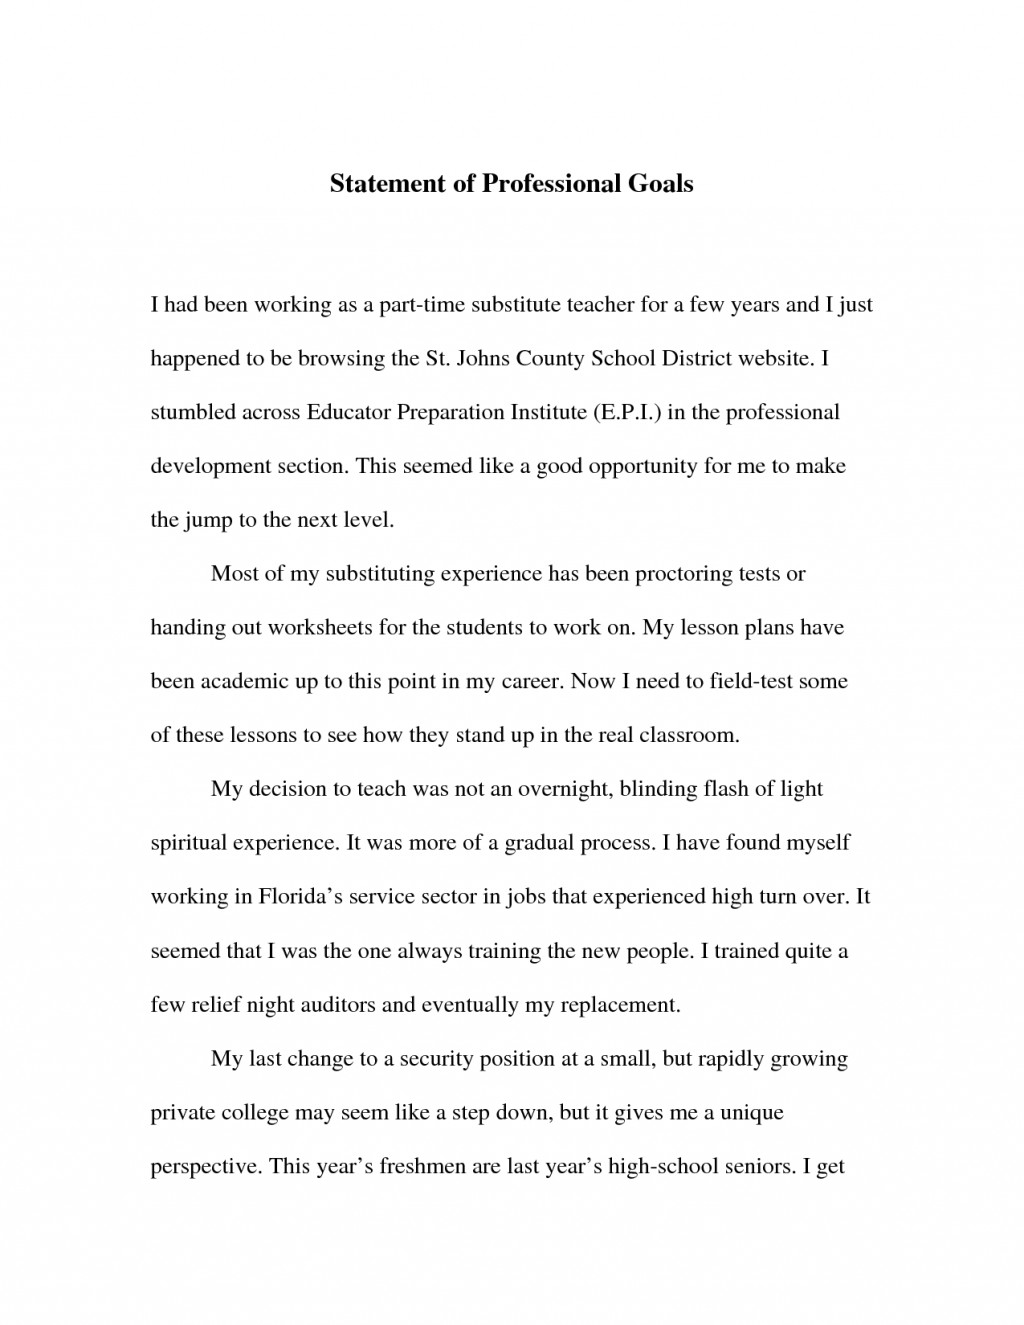 016 Professional Goals Statement Letter Sample 653144 Essay Example Vcu Remarkable Personal Large